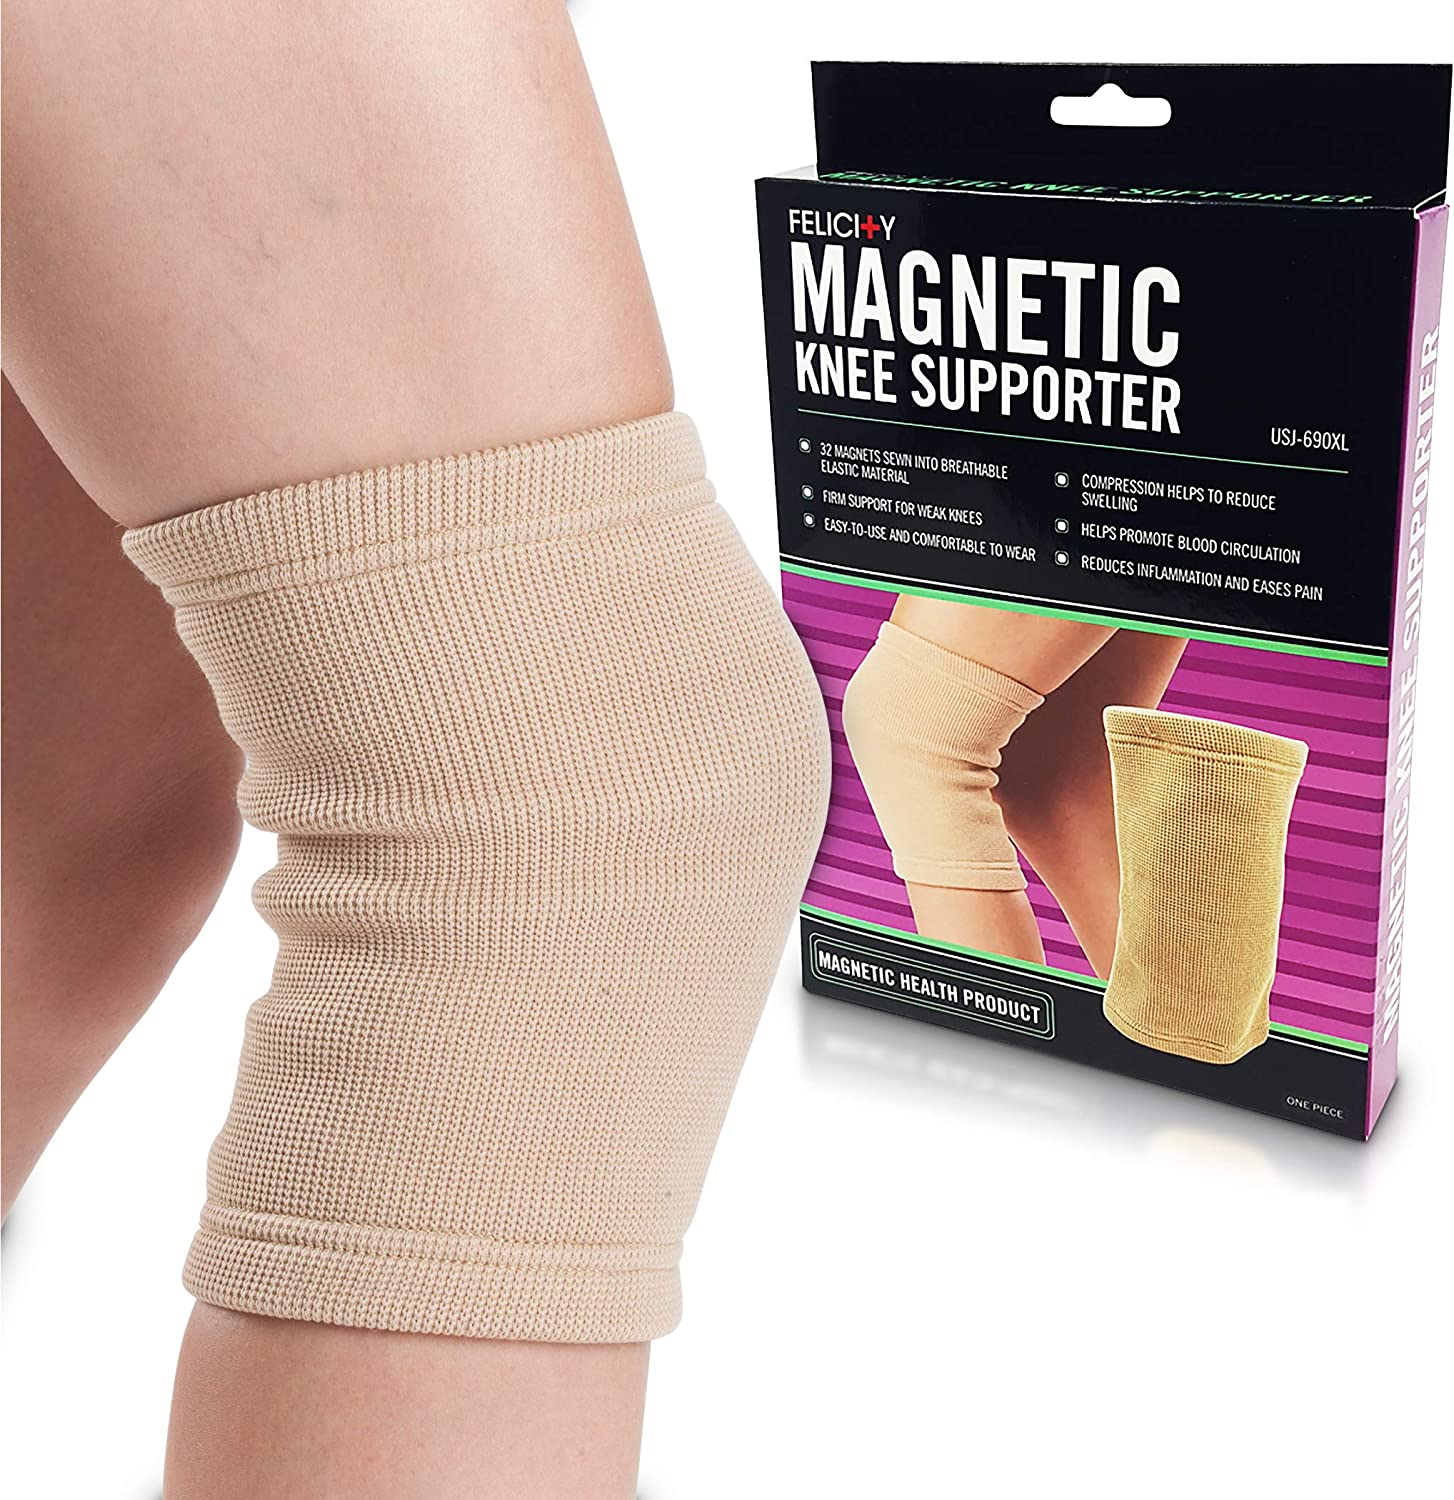 U.S. quality assurance Jaclean Felicity USJ-690 Magnetic Max 60% OFF Supporter Knee f Support